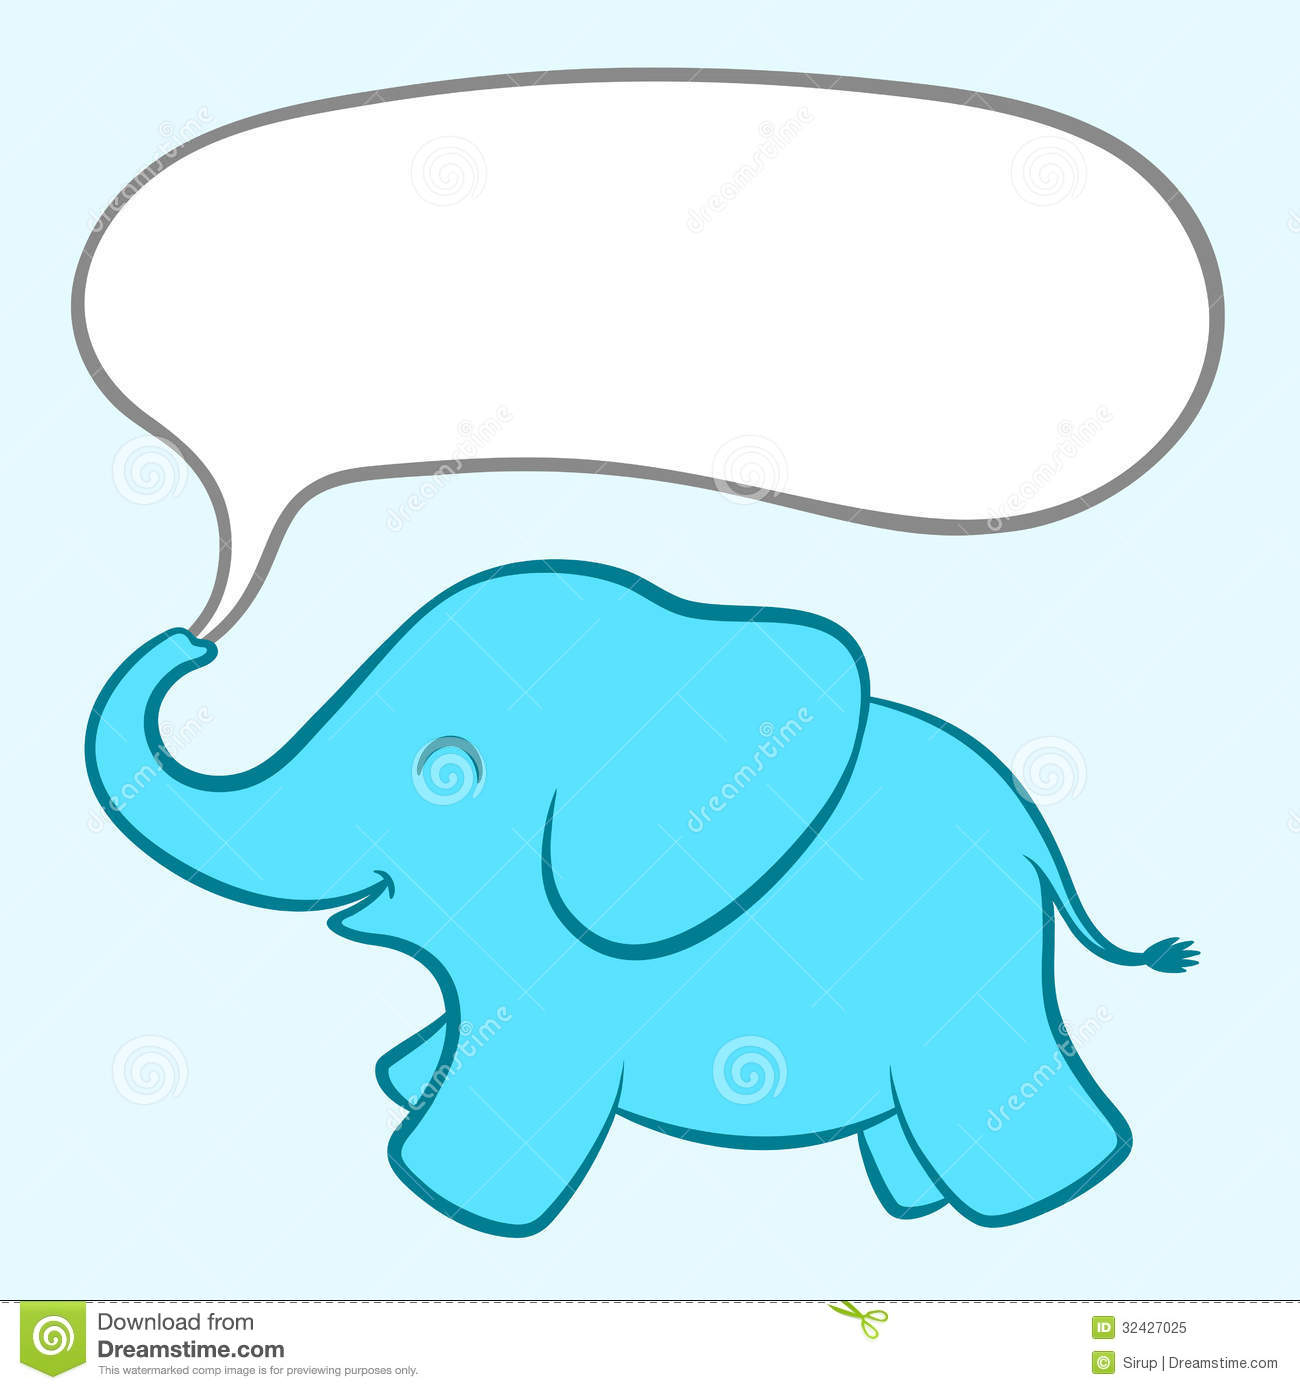 Cartoon illustration of an adorable little baby blue elephant with a